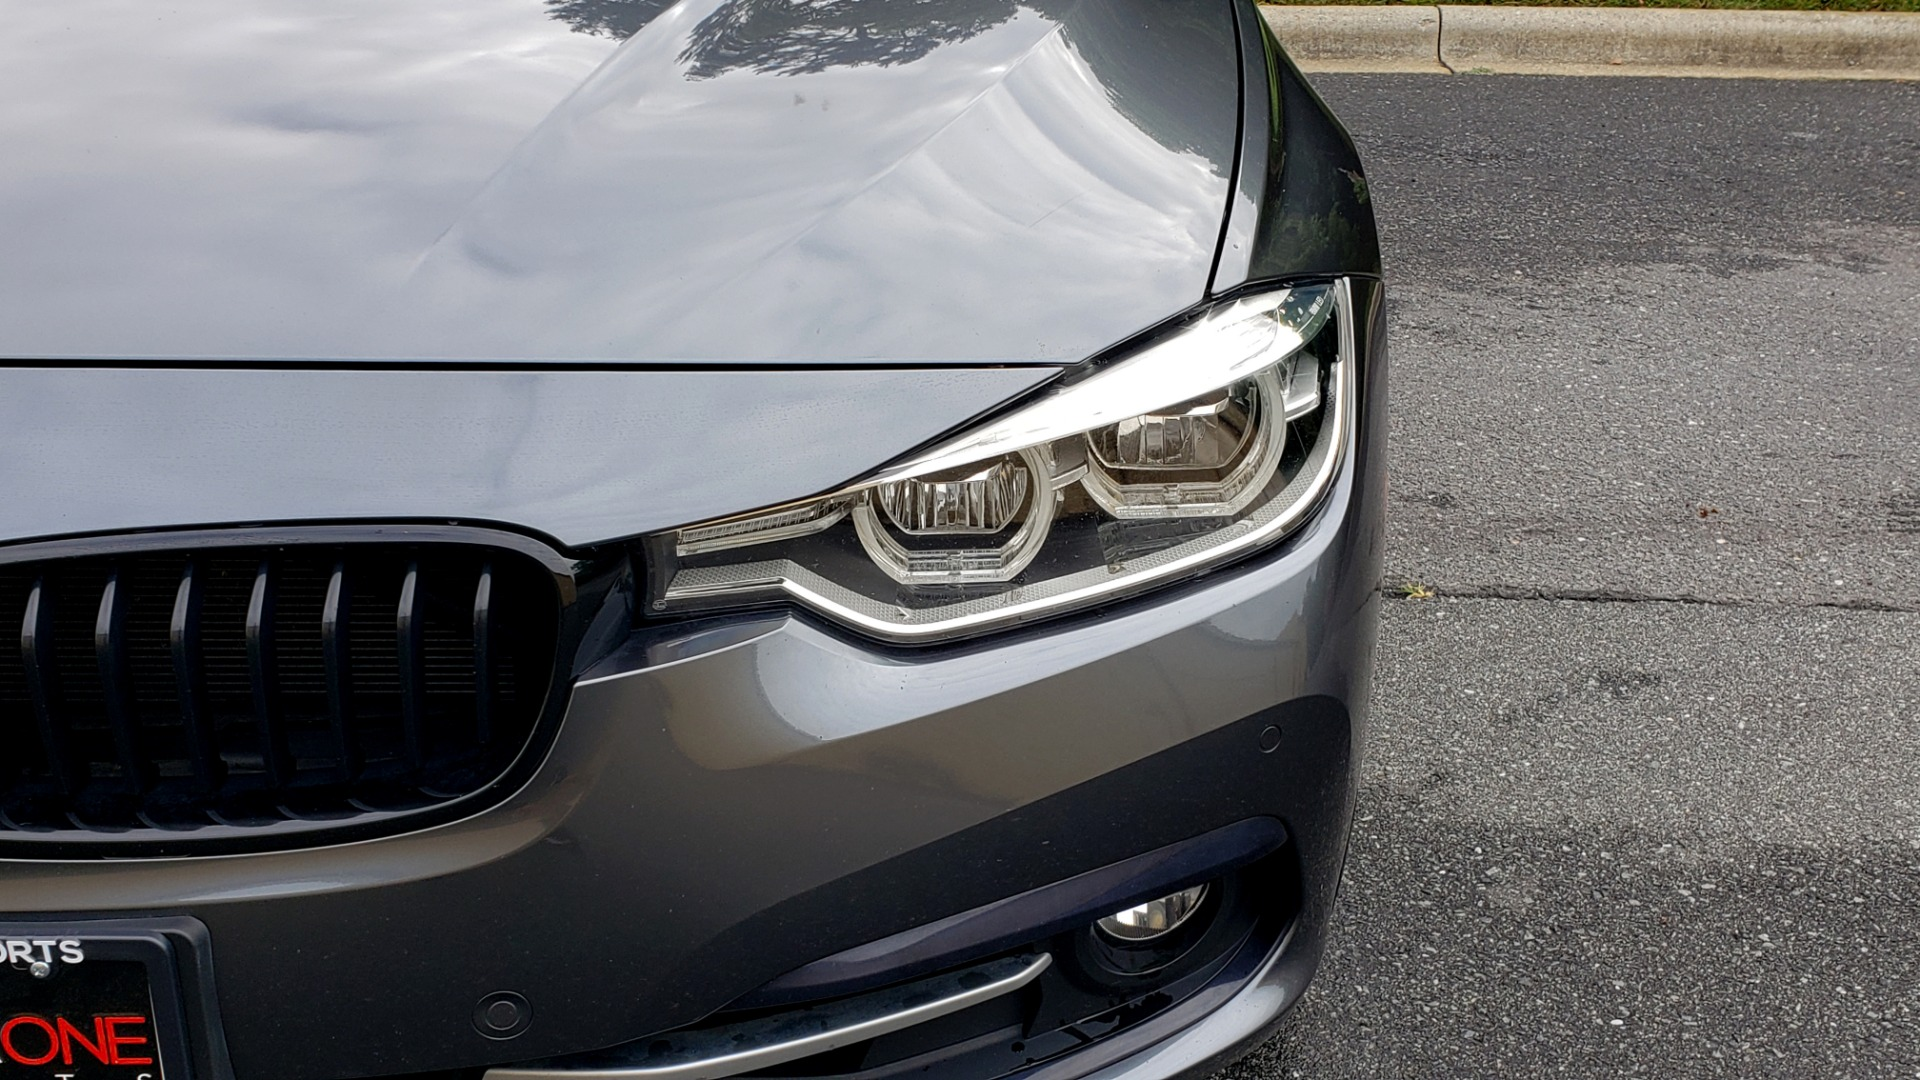 Used 2017 BMW 3 SERIES 340I XDRIVE SPORT / NAV / DRVR ASST PLUS / PARK ASST / CLD WTHR for sale $28,995 at Formula Imports in Charlotte NC 28227 19